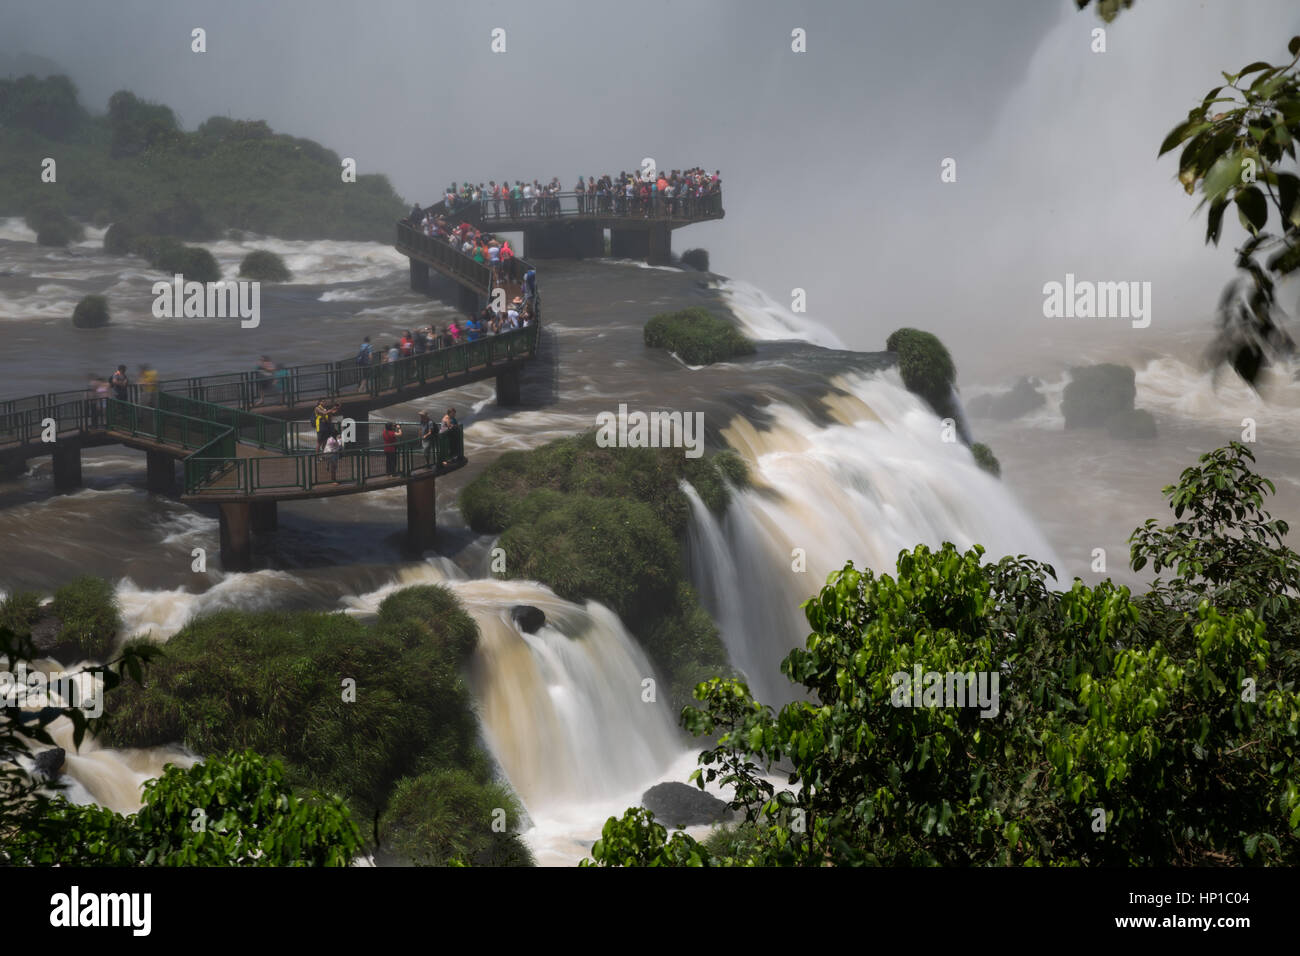 Foz do Iguaçu, Brazil. 16th February, 2017. View of visitors on 'Garganta do Diabo' (Devil's Throat) - Stock Image